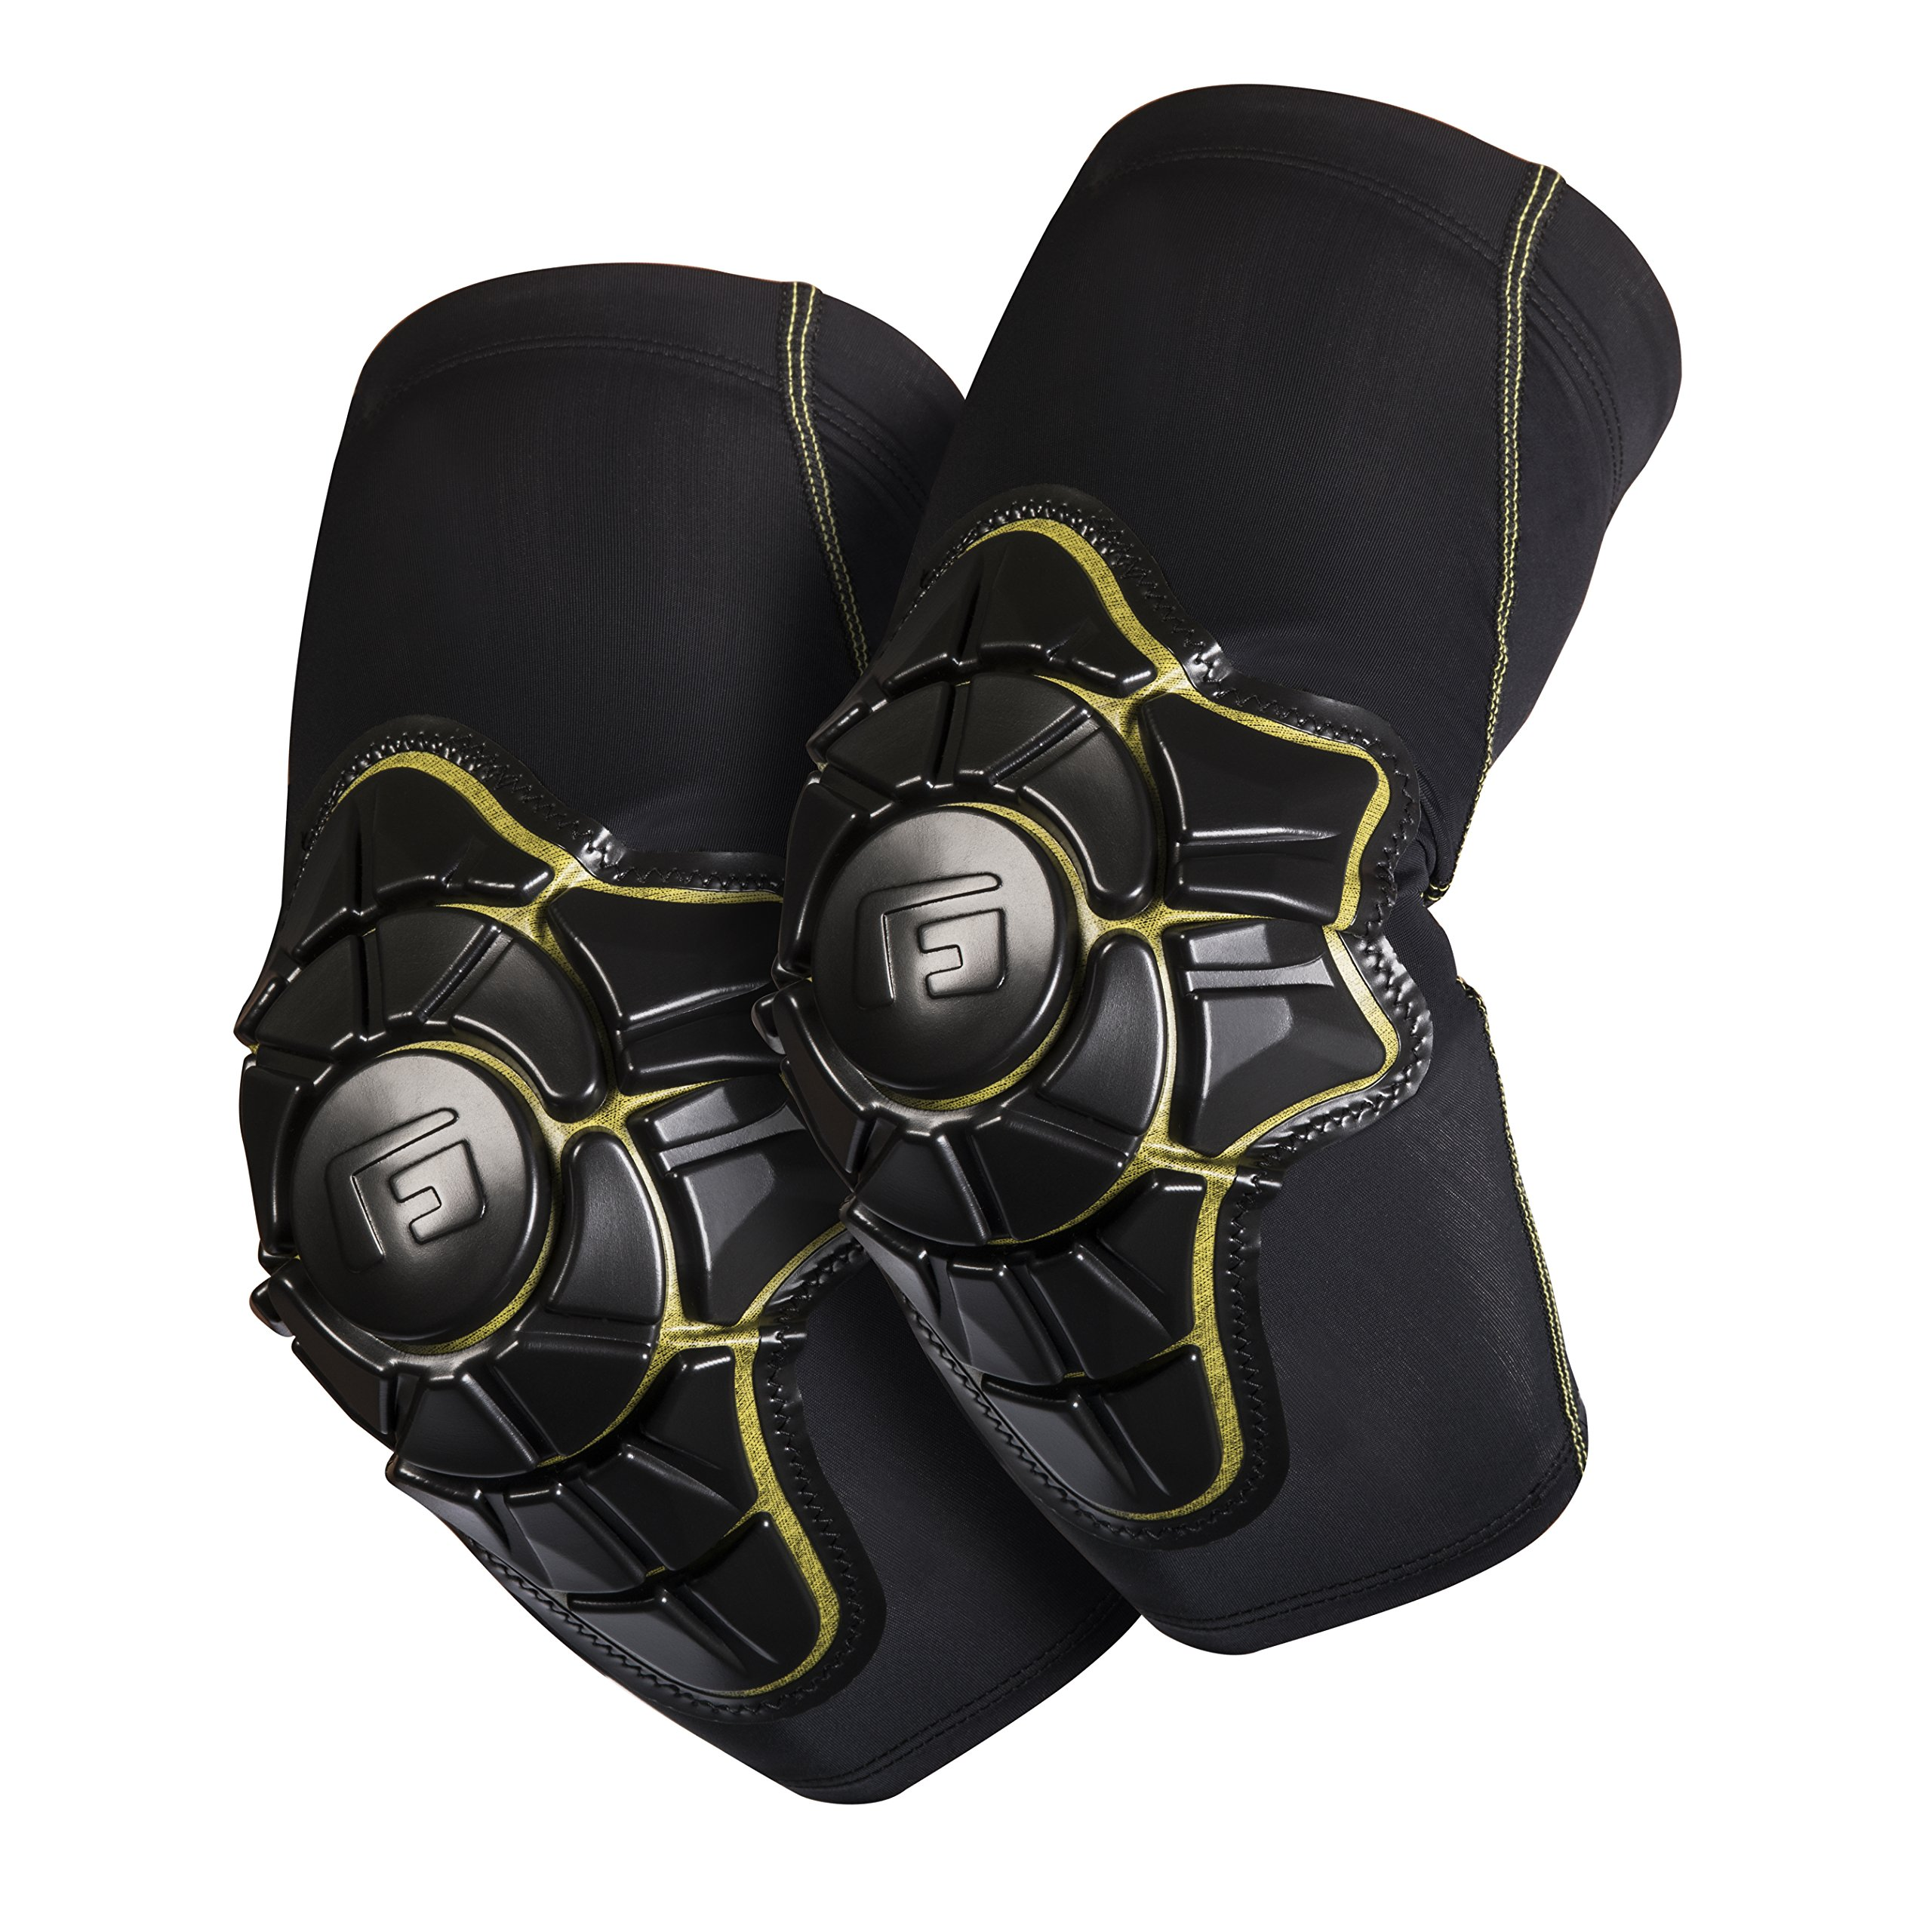 G-Form Youth Pro-X Elbow Pad, Black/Yellow, Large/X-Large